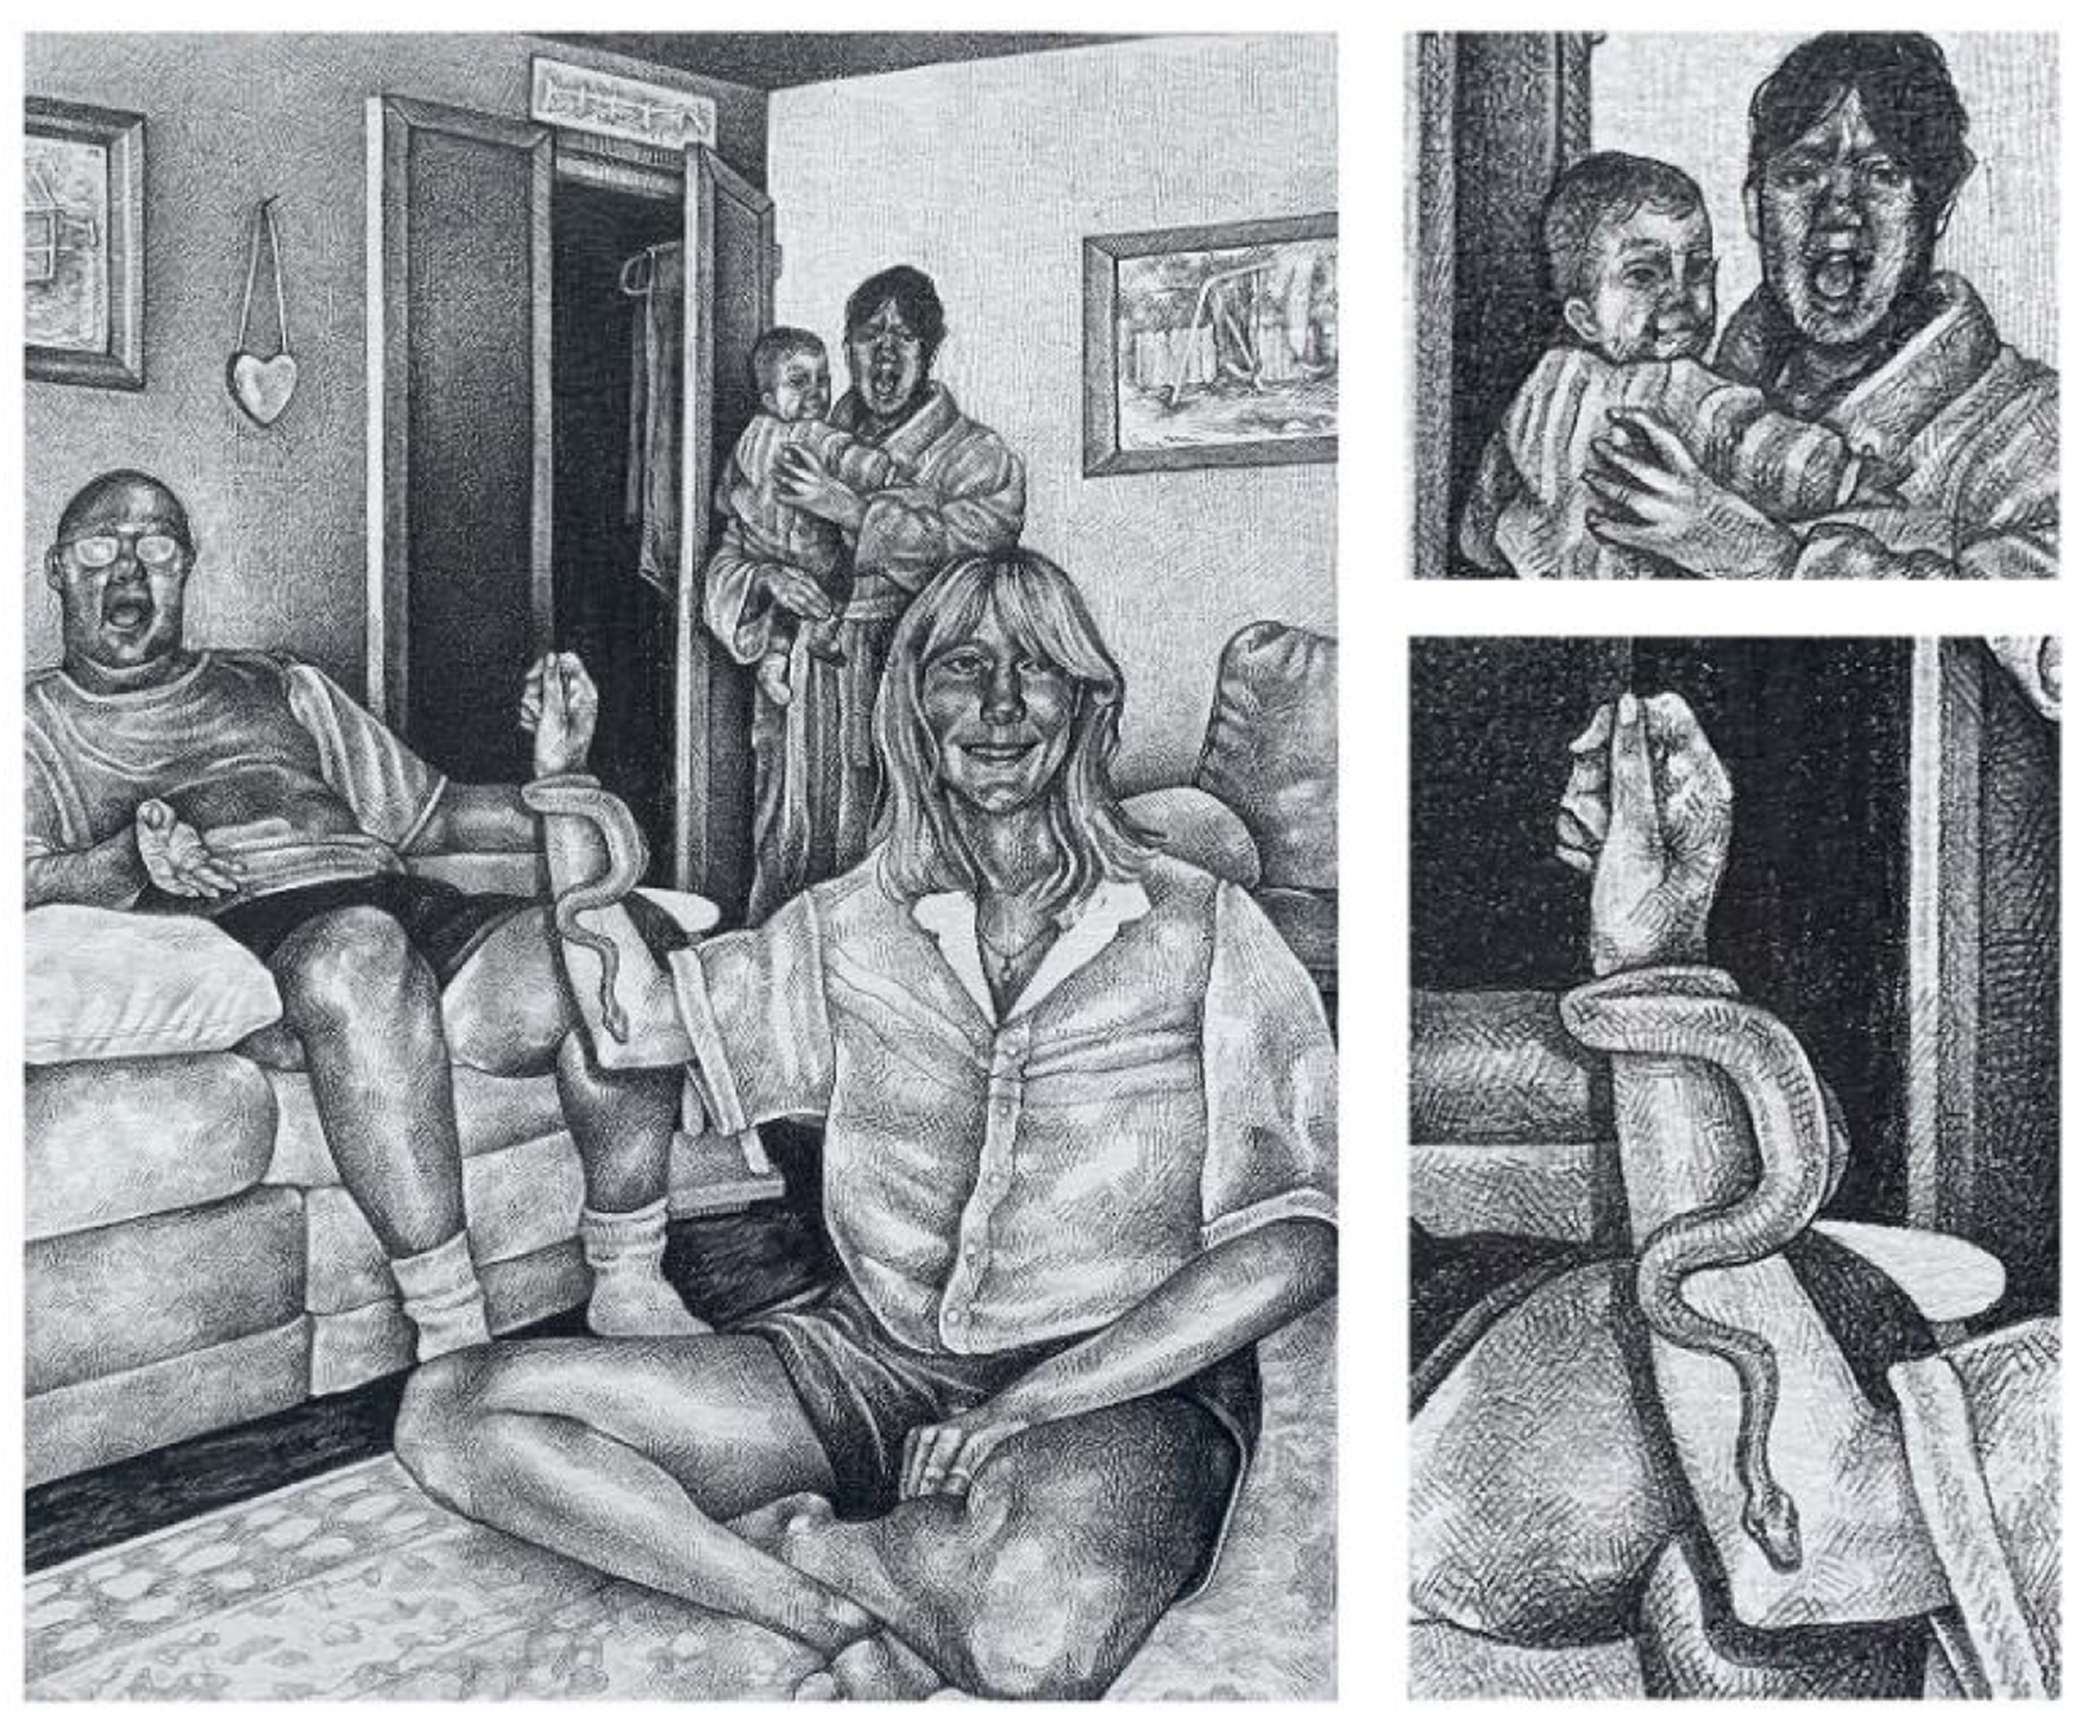 Black and white drawing of a family sitting in a living room, with a snake coiled around a woman's arm, with two images on the right, stacked, detailing a woman holding a baby on the top and the coiled snake on the bottom